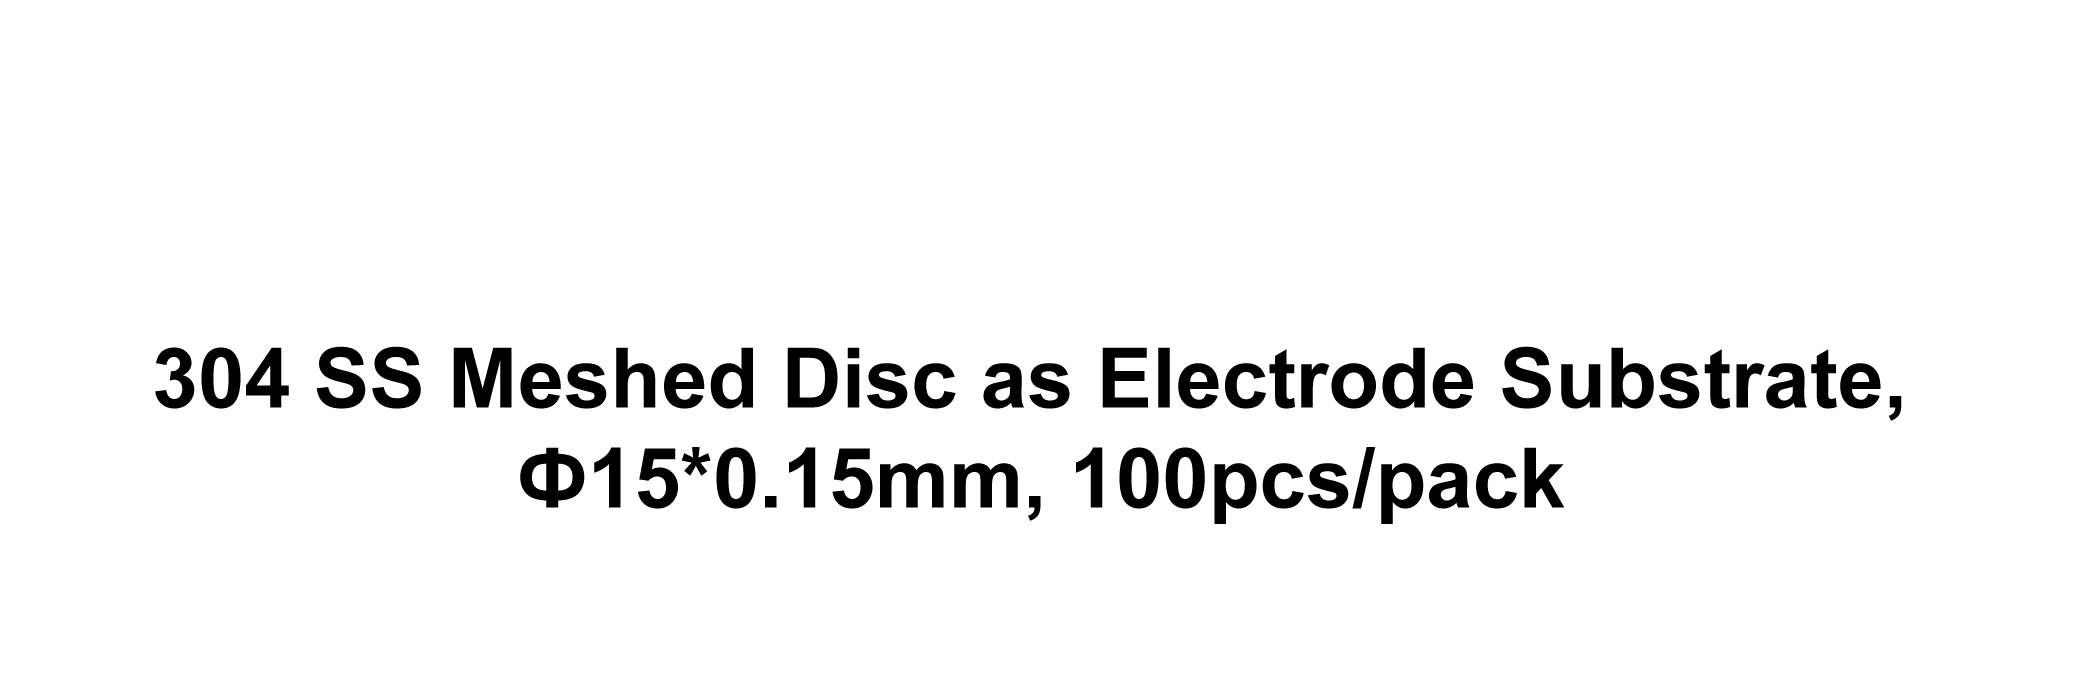 304 SS Meshed Disc as Electrode Substrate, Ф15*0.15mm, 100pcs/pack